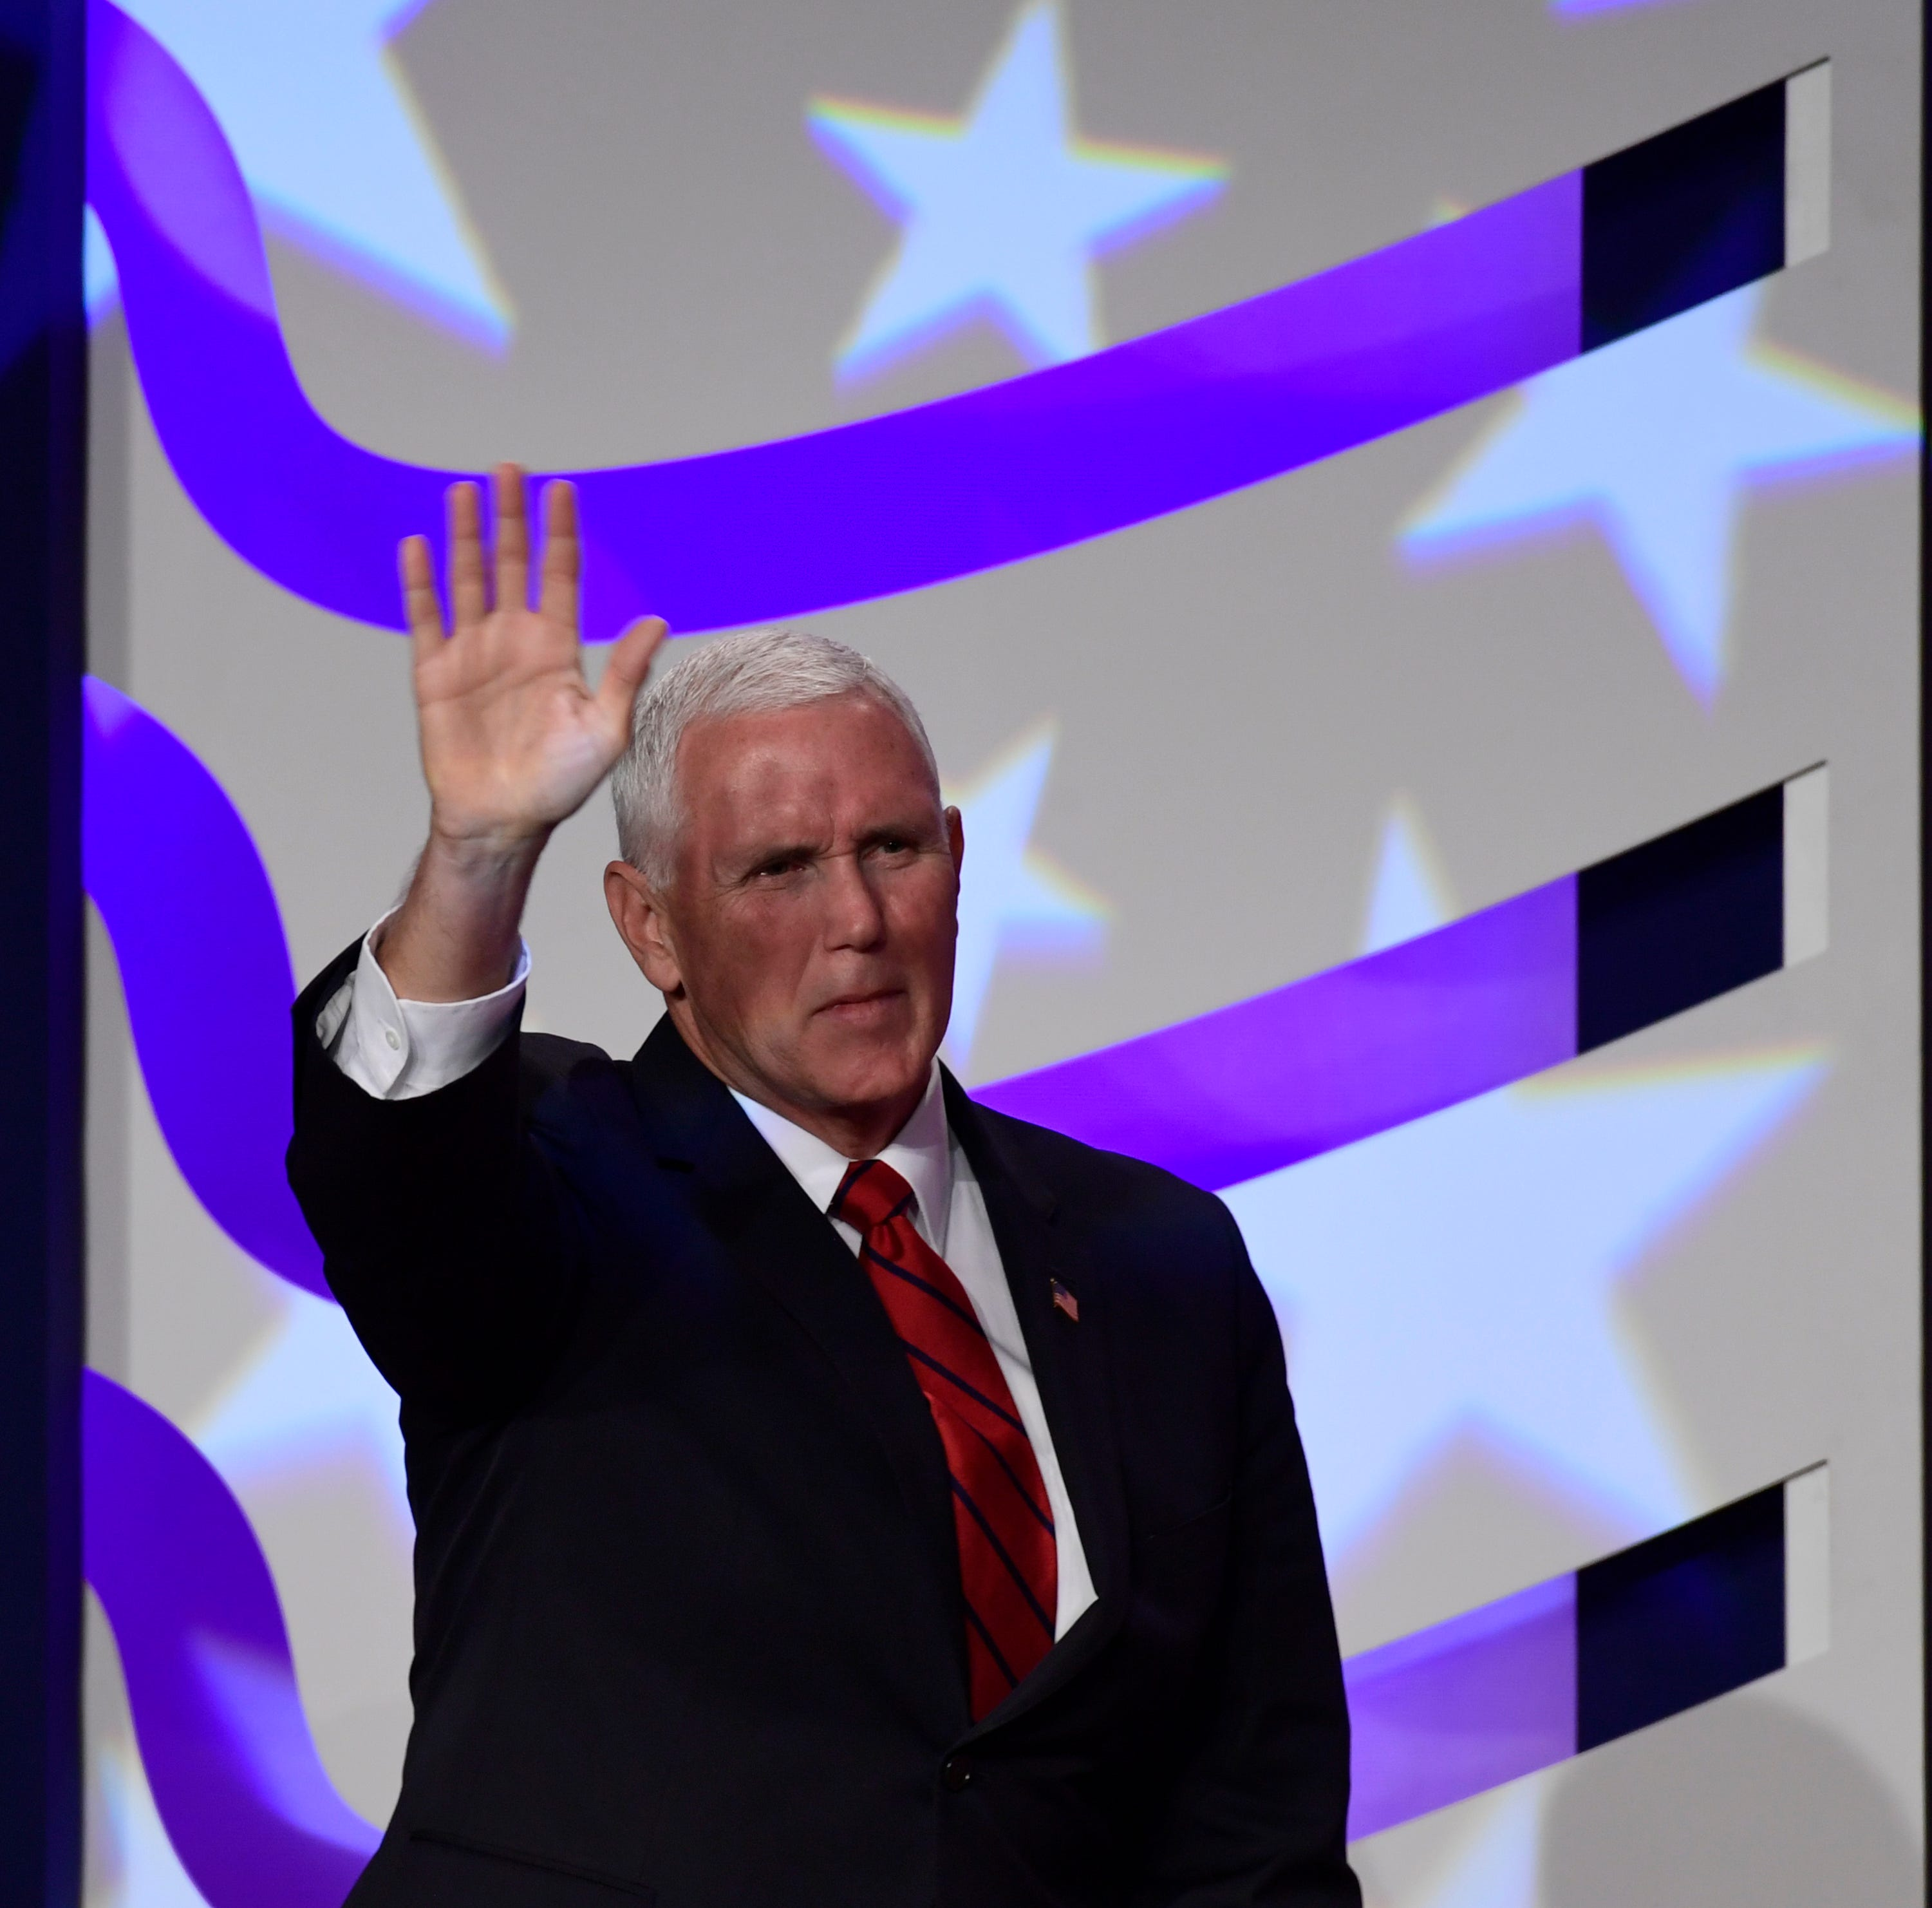 Mike Pence warns Christian conservatives against complacency in midterm elections